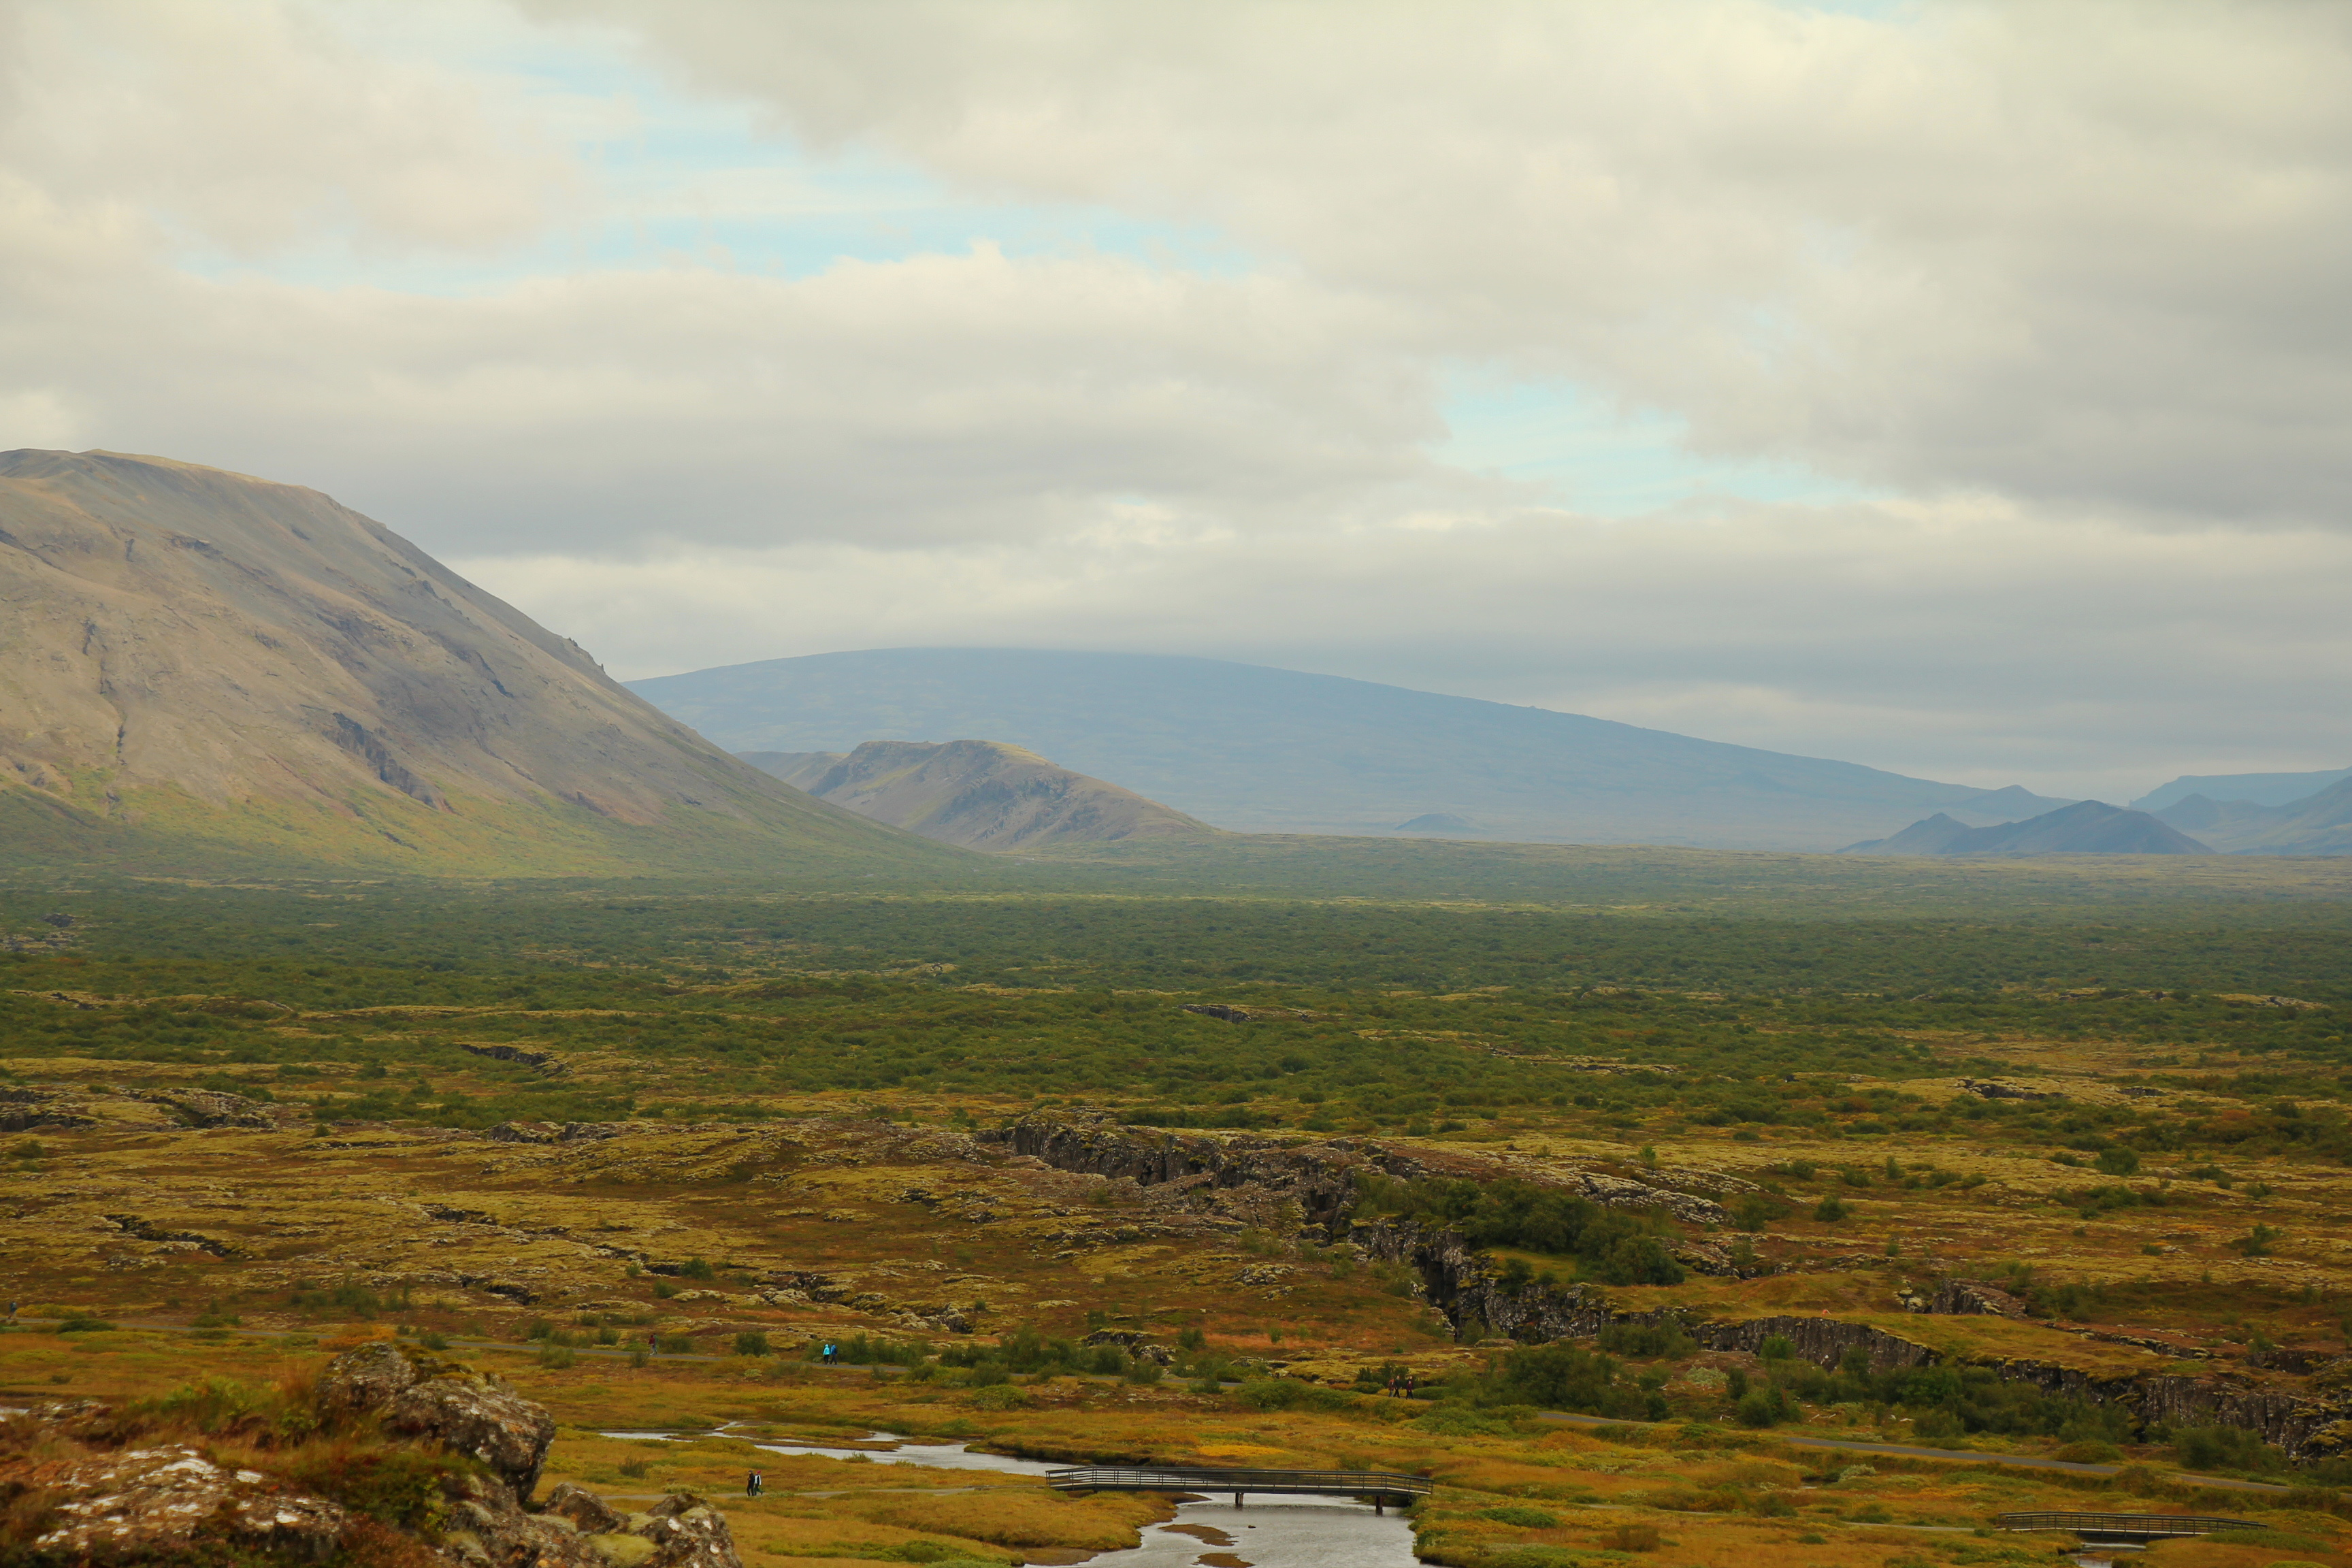 Looking out over the mid-Atlantic Ridge towards the European plate at Þingvellir, Iceland. Photo by author.